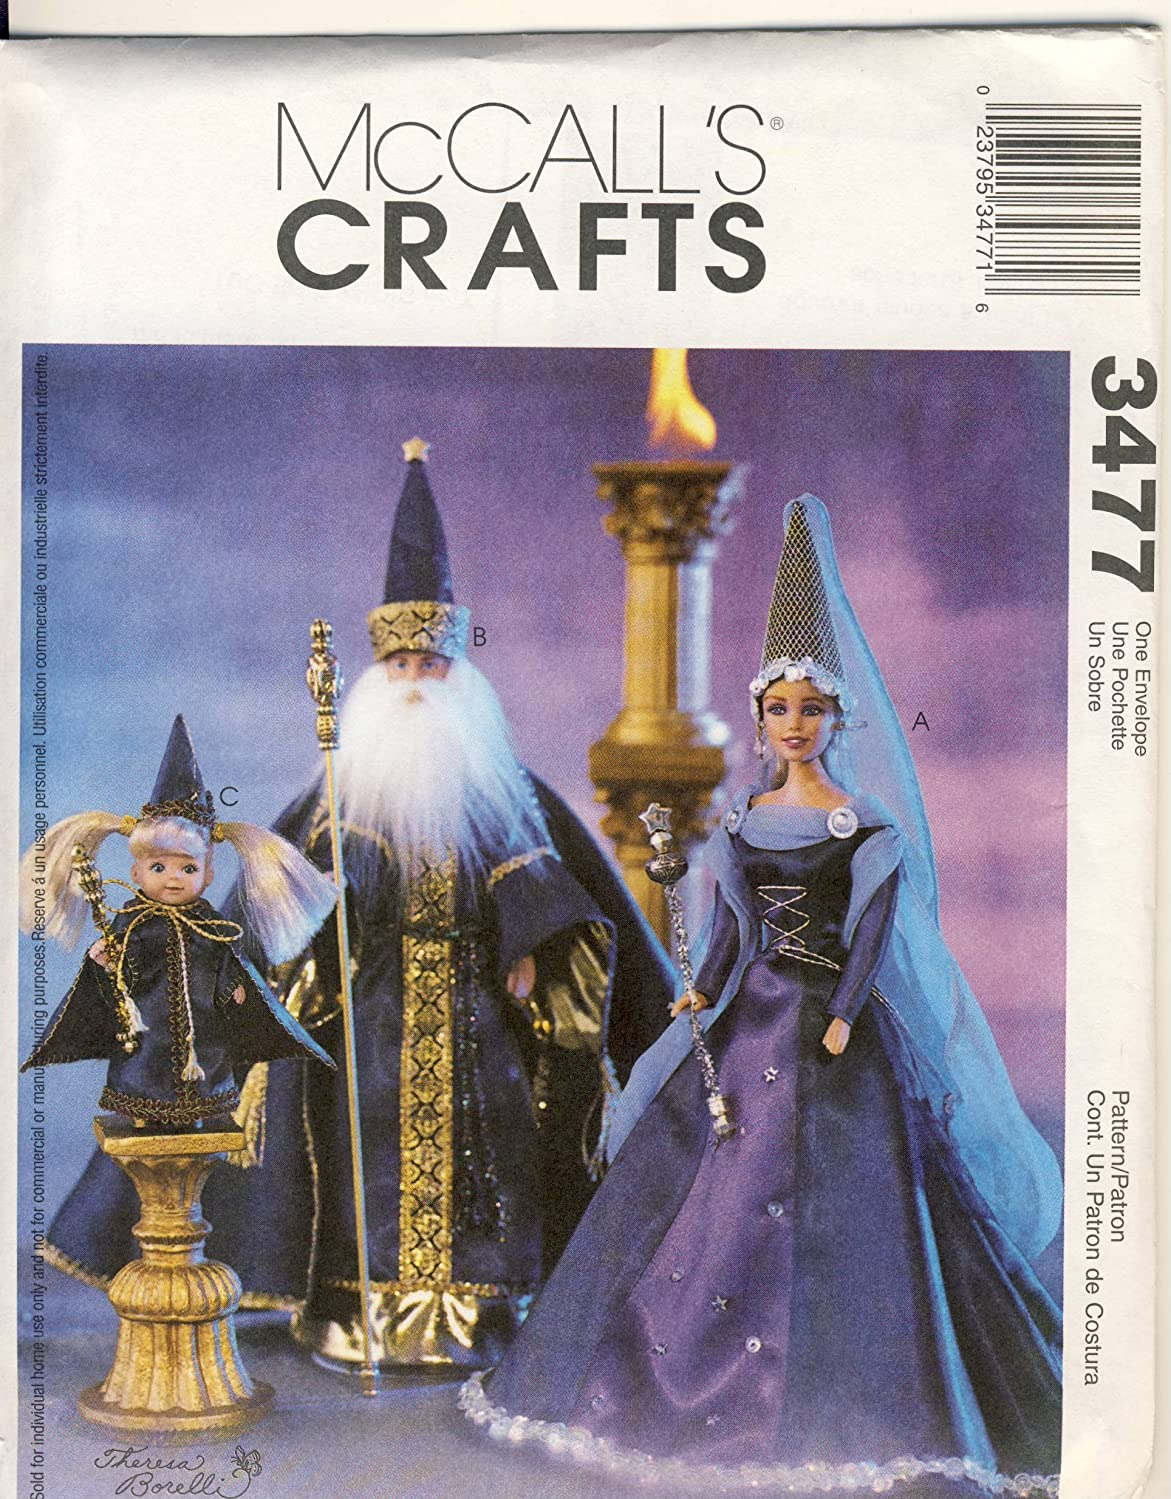 McCalls Crafts Sewing Pattern 3477 - Use to Make - Fashion Doll Clothes - Wizards